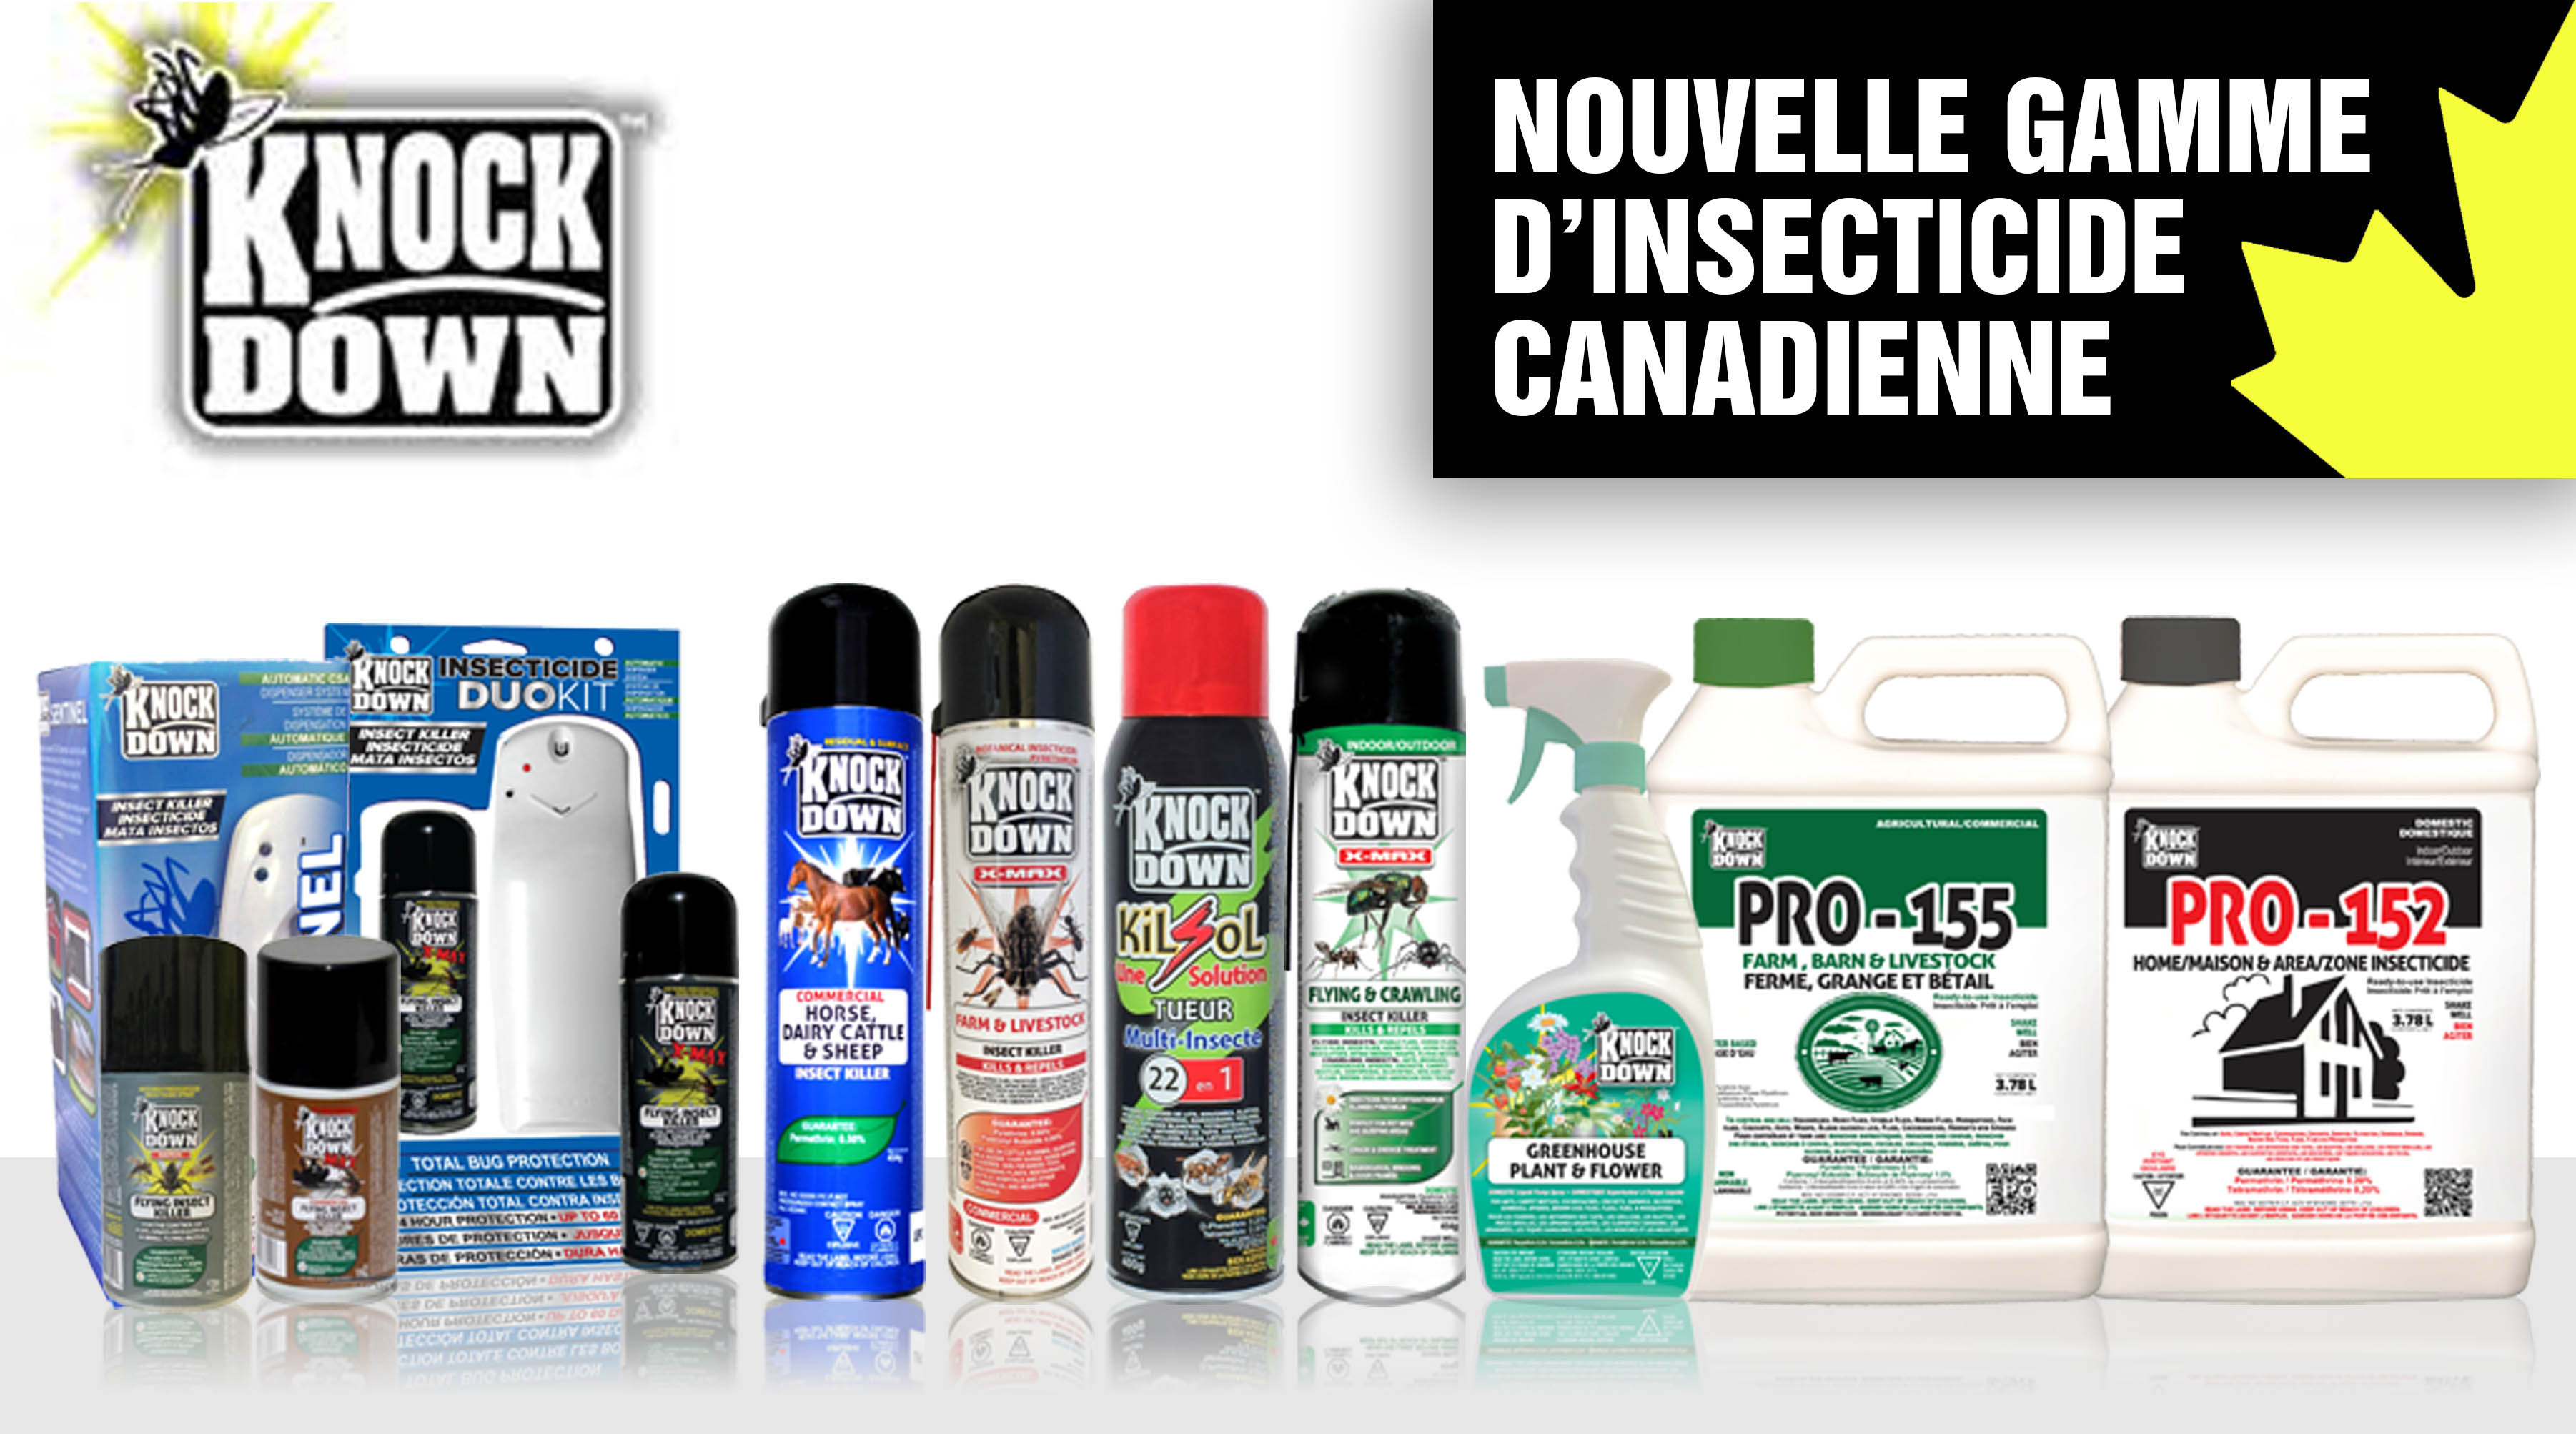 Gamme insecticide Knock Down